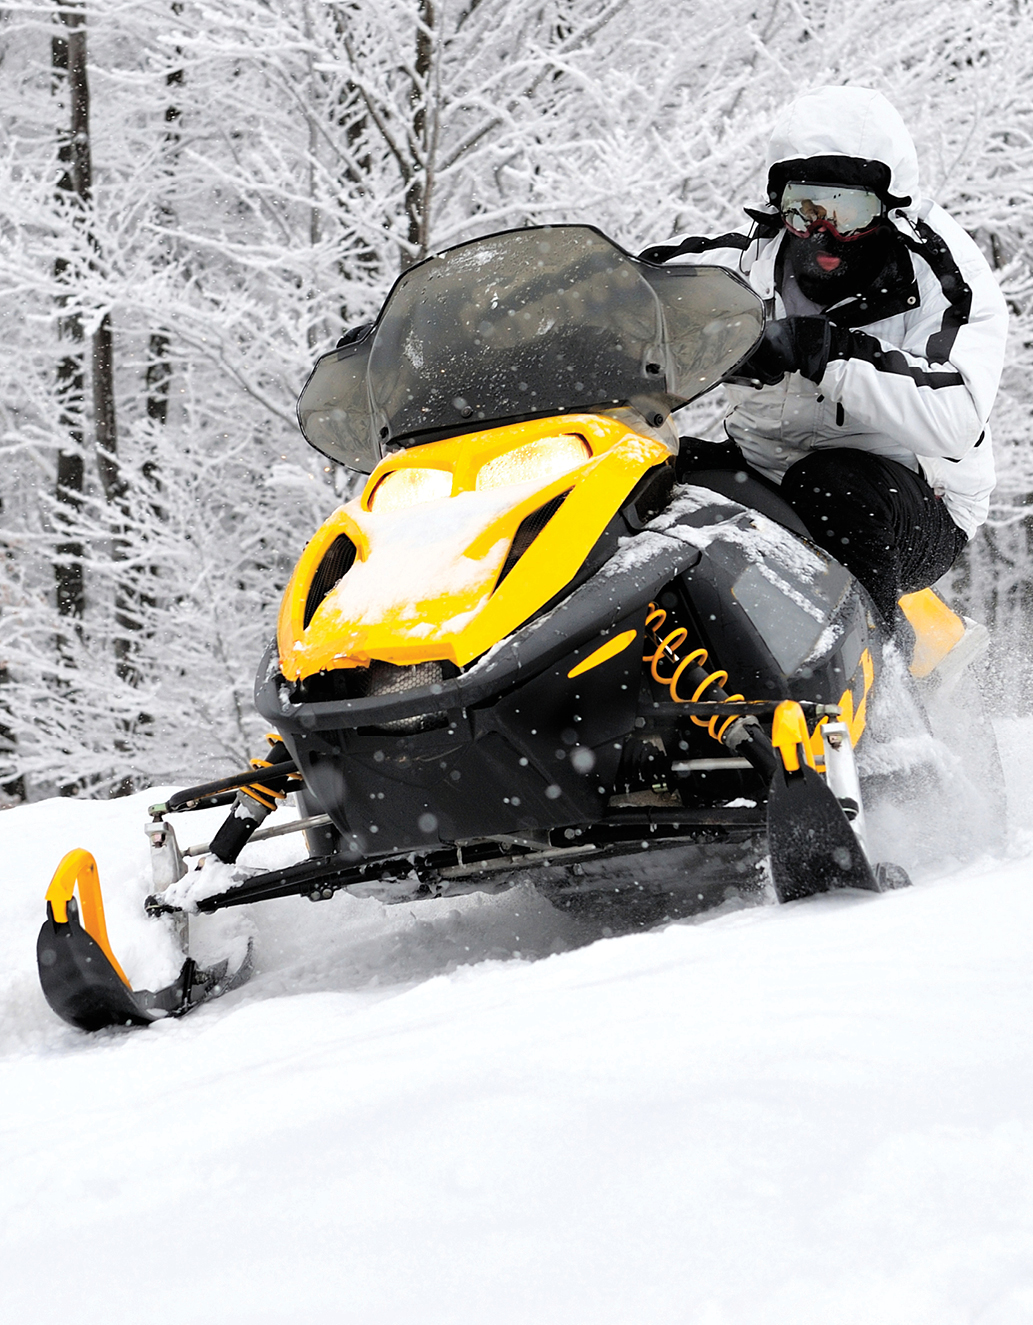 Snow_City_Cycle_Marine_454310442